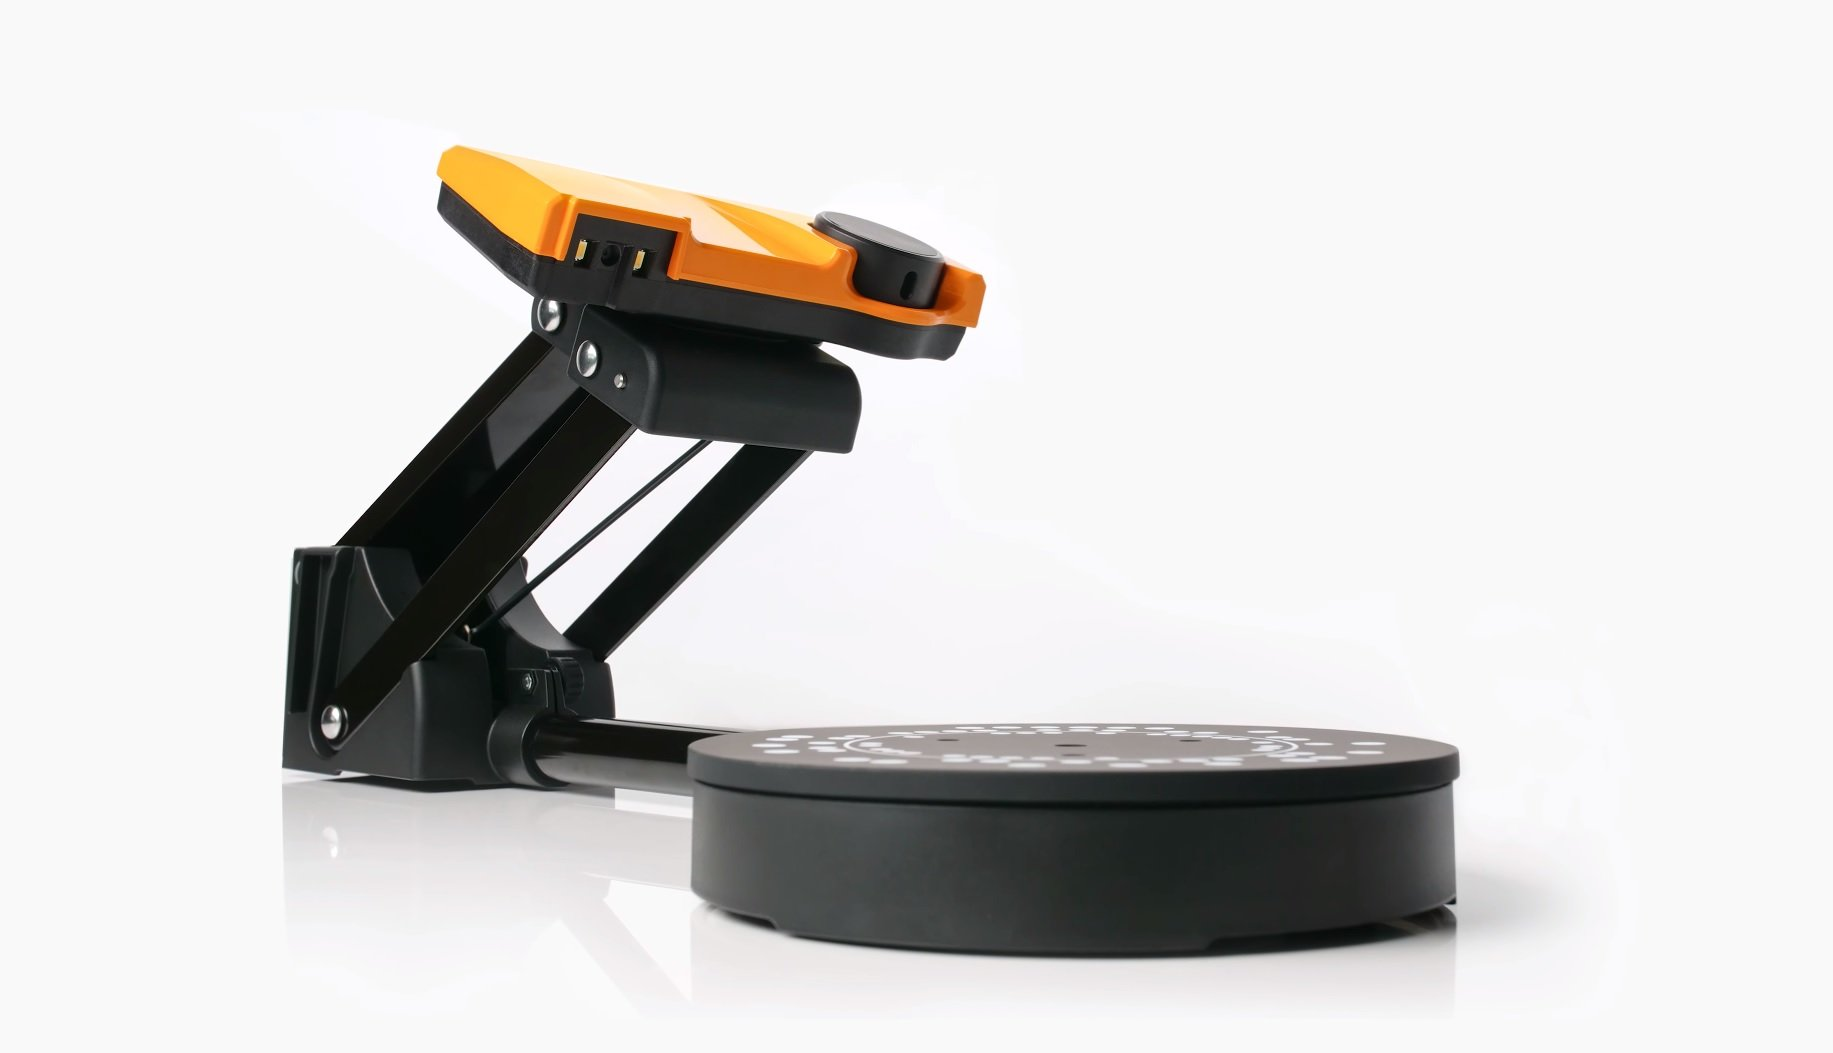 Scan Dimension Sol 3D Scanner: Review the Specs | All3DP